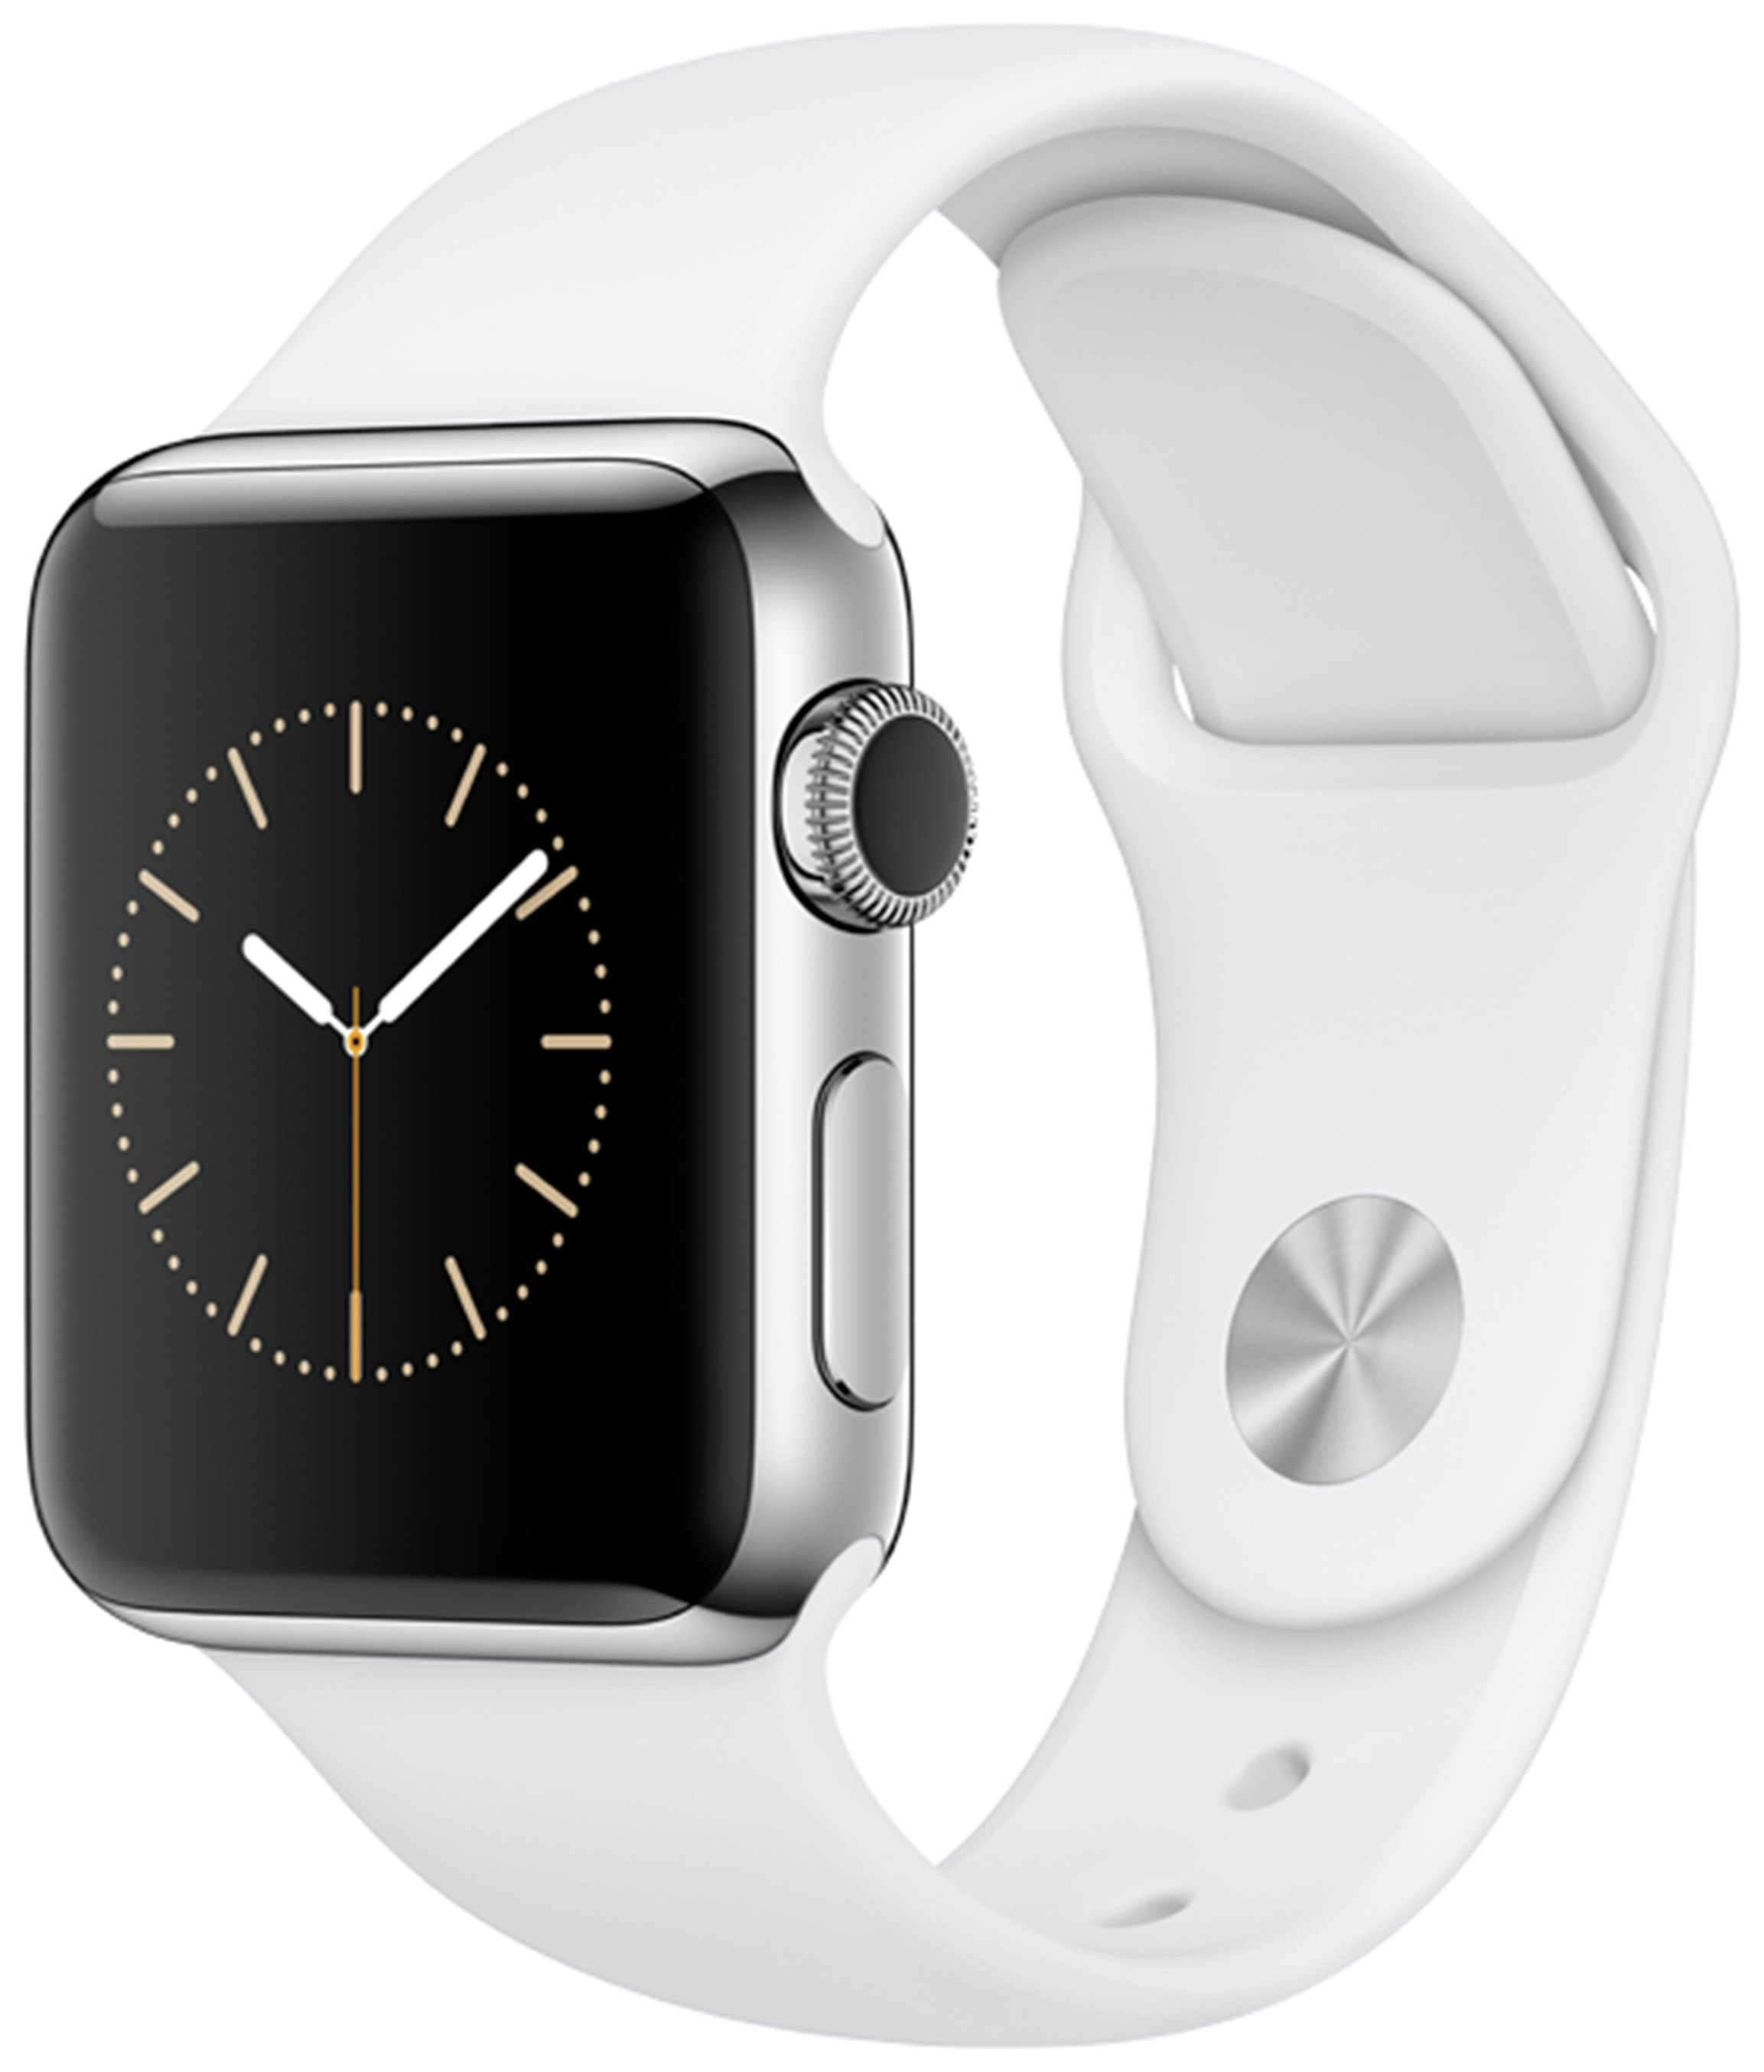 Apple Watch S2 38mm Stainless Steel White Sport Band. cheapest retail price